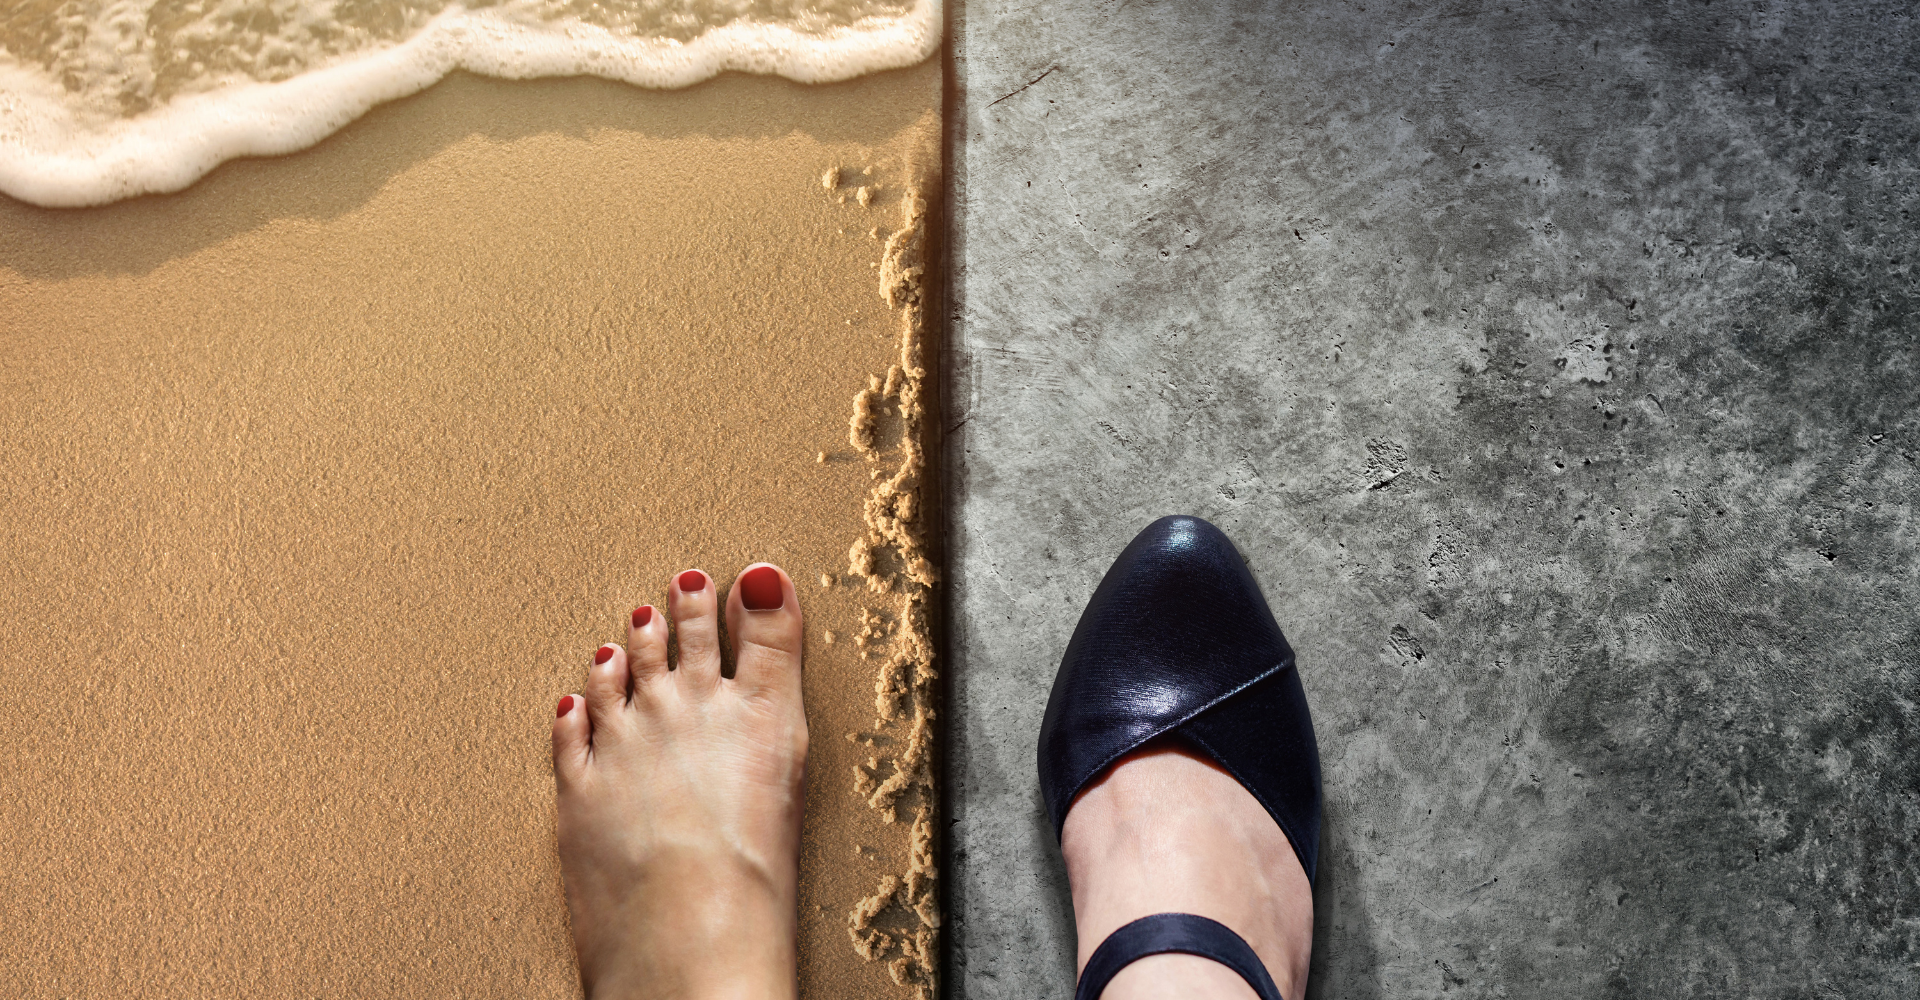 Barefoot on beach and high heel on concrete